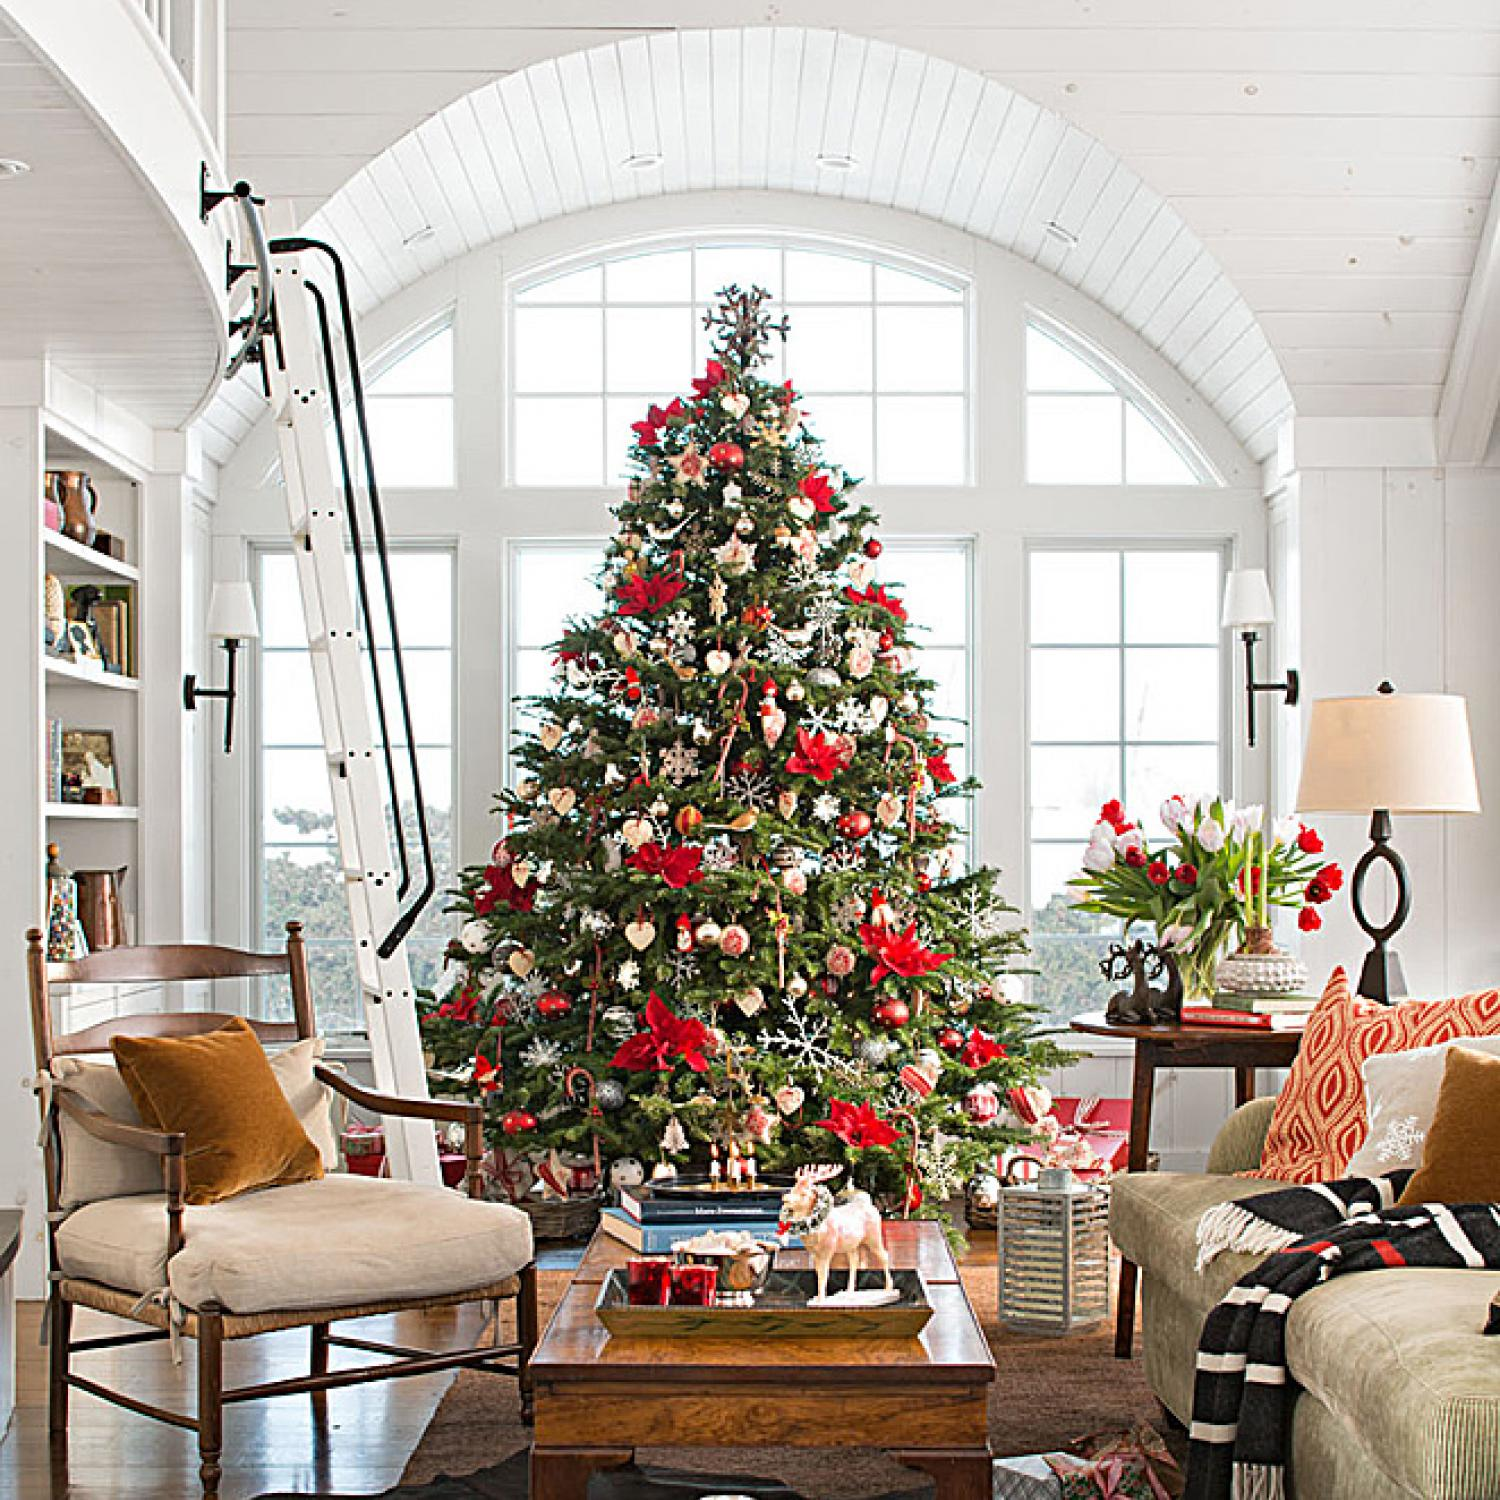 Holiday Home Design Ideas: Snowy Vermont Home Ready For Christmas